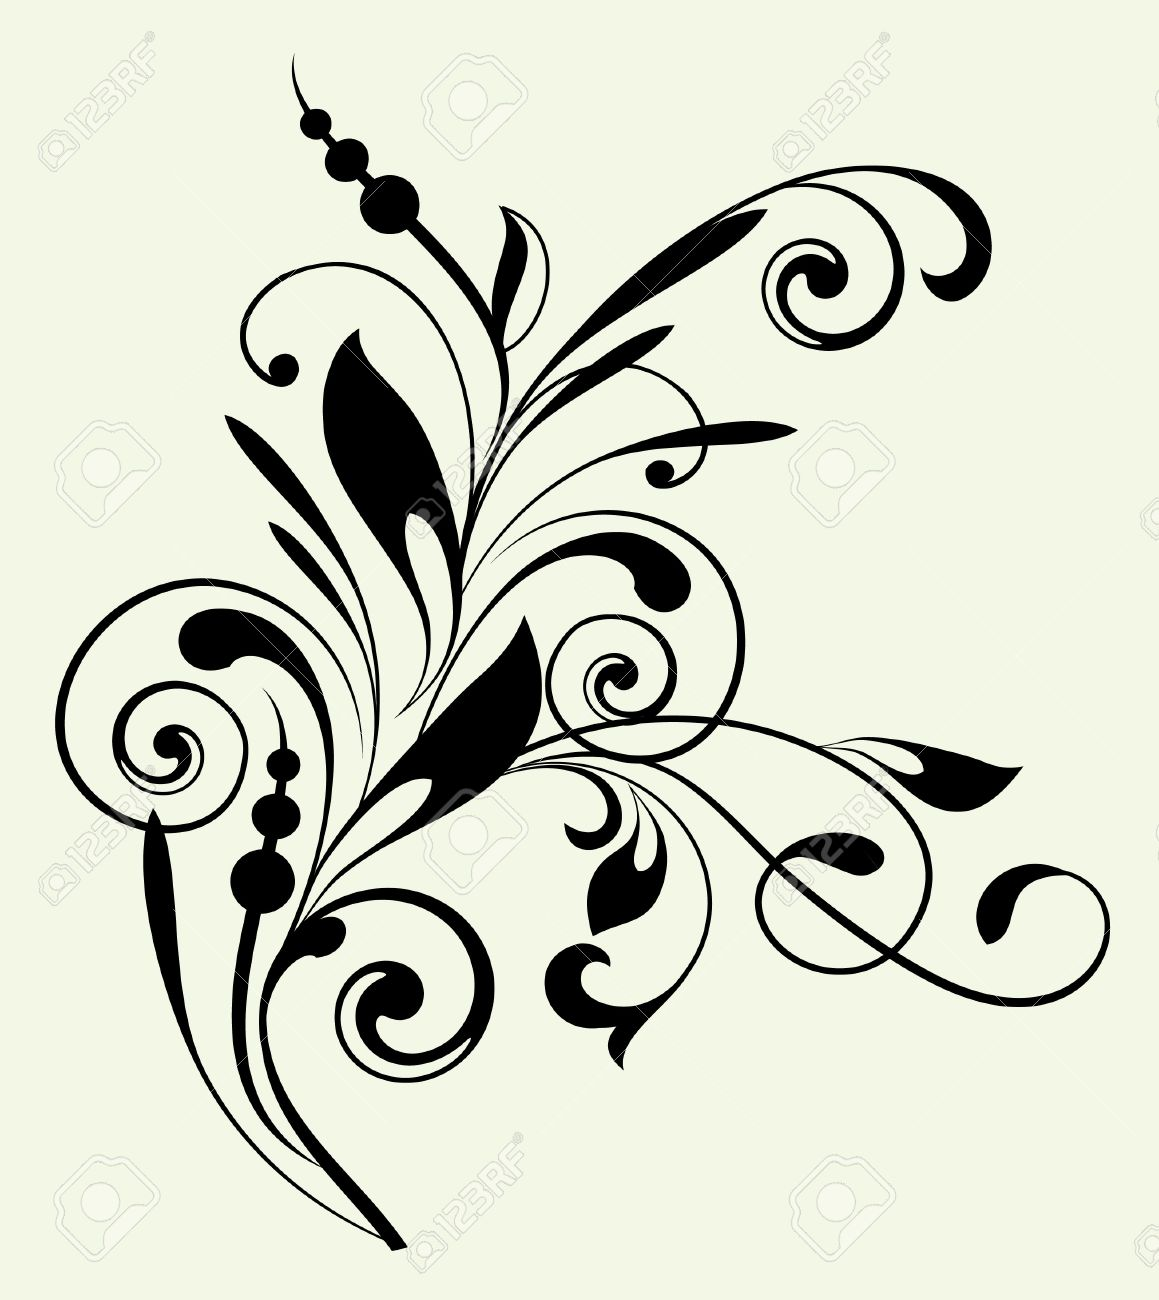 Floral Pattern With Decorative Branch Royalty Free Cliparts.